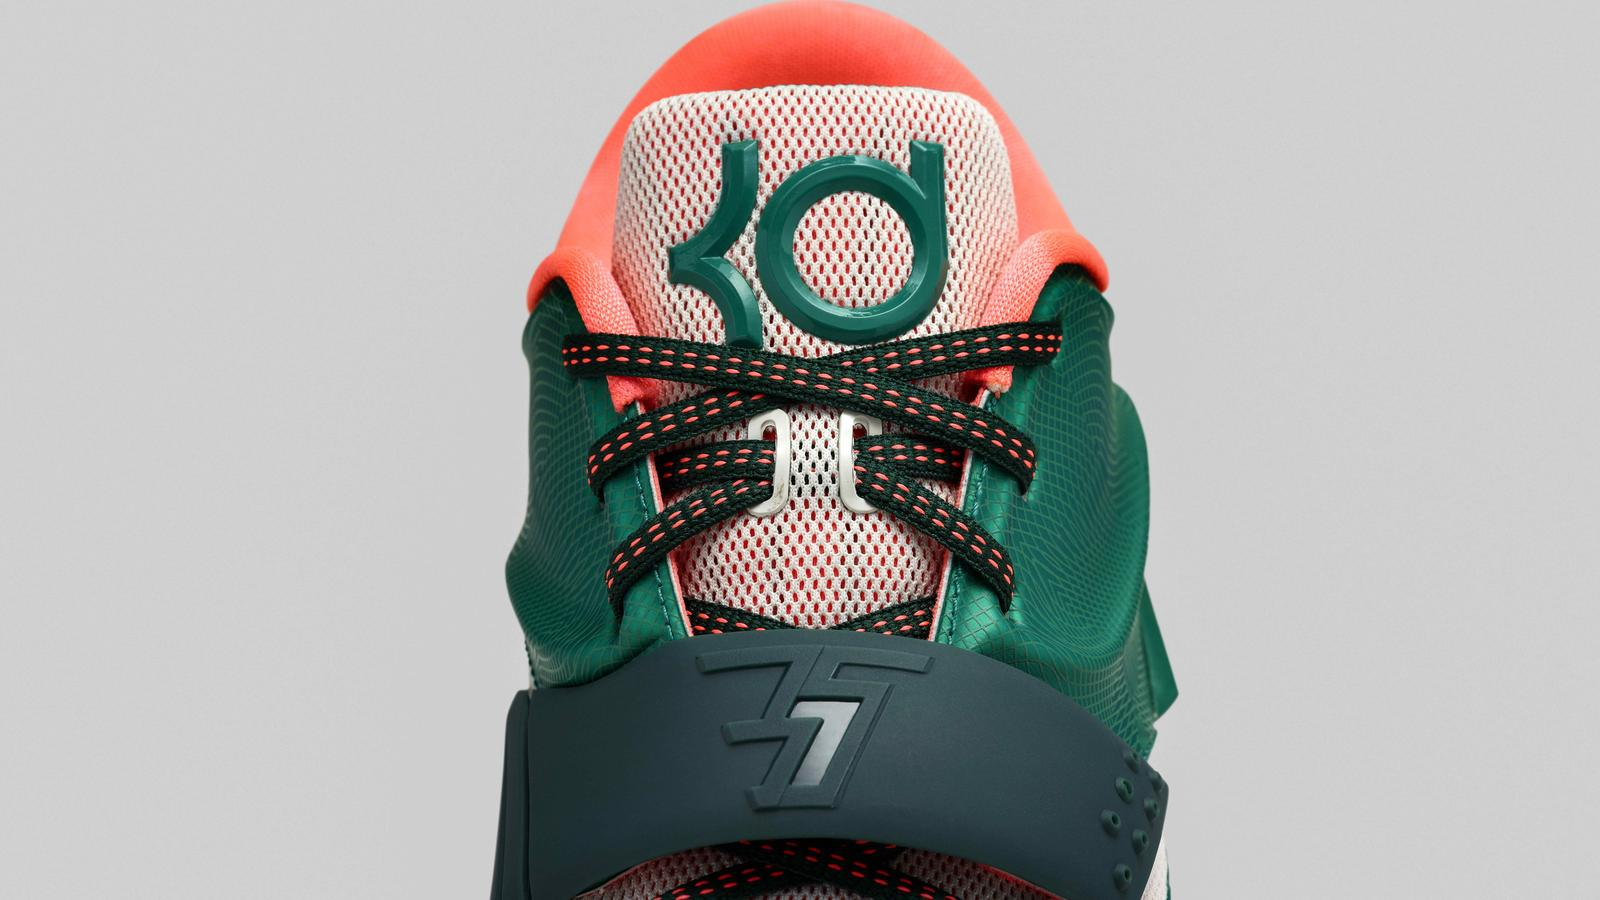 bb34d44bea9a The KD7 fuses performance innovation with inspirations from Kevin Durant s  journey on and off the court. Durant s personal stories come to life  through ...